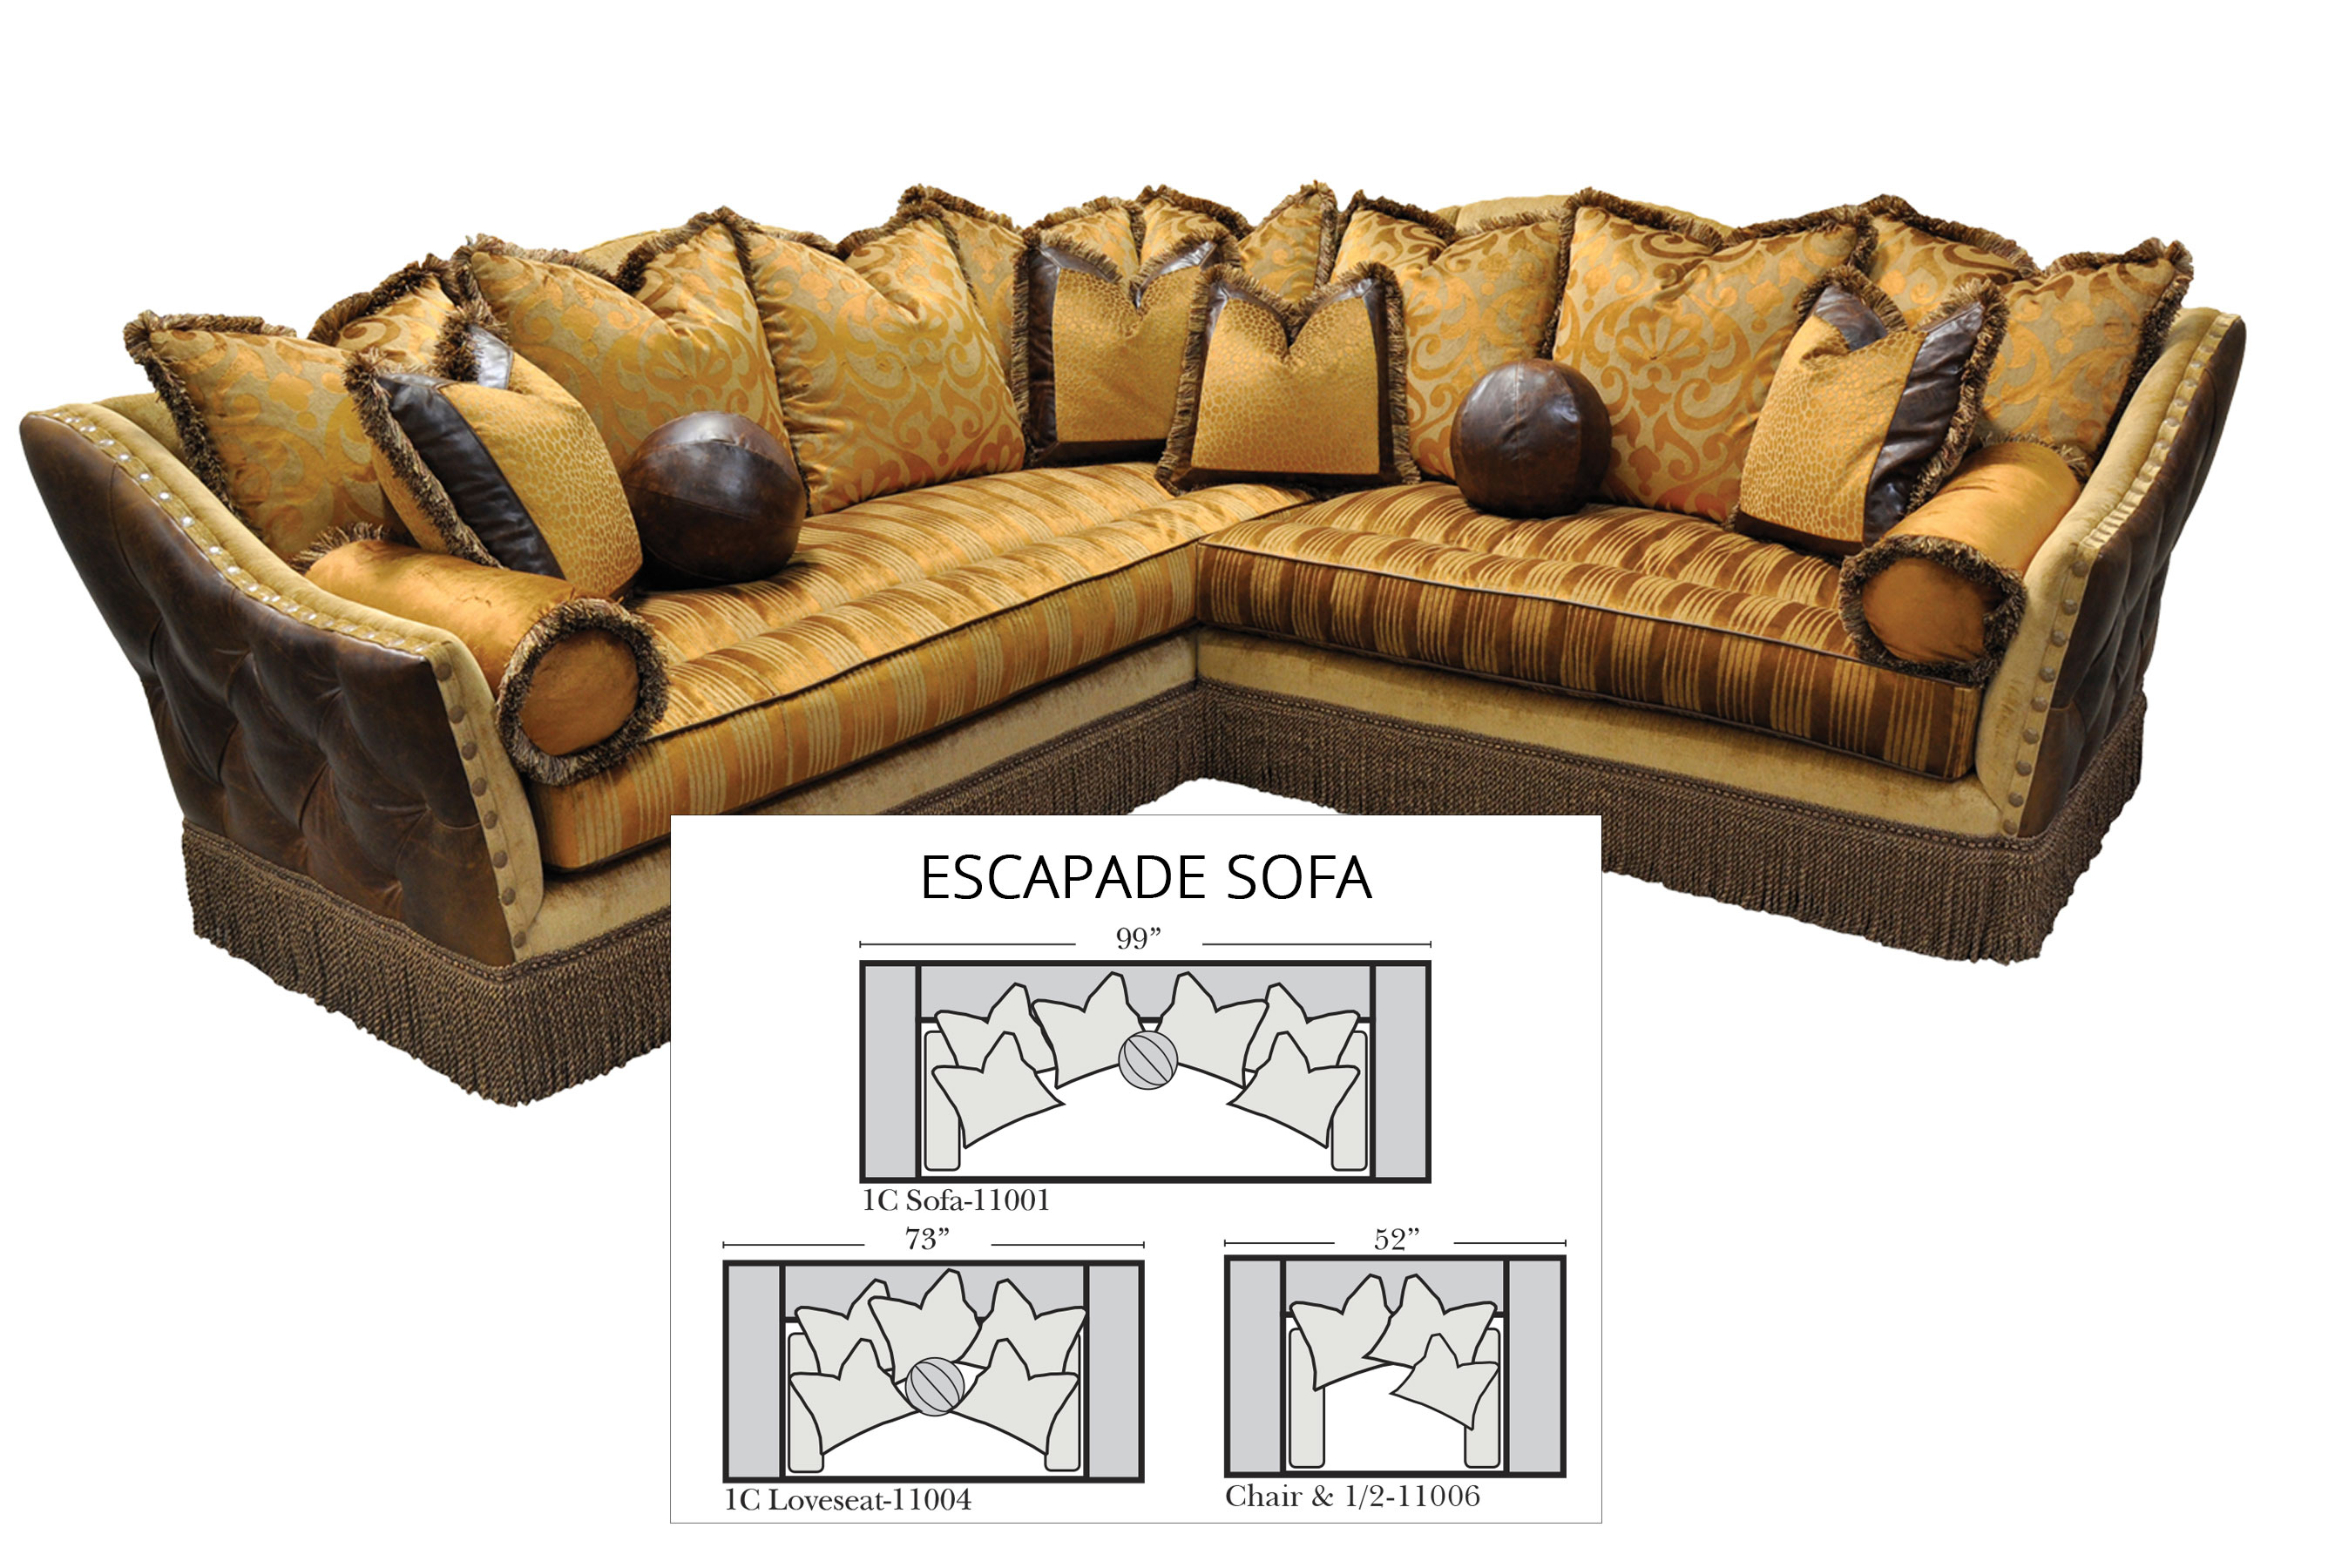 Escapade Sofa Collection All Leather Sofas And Sectionals